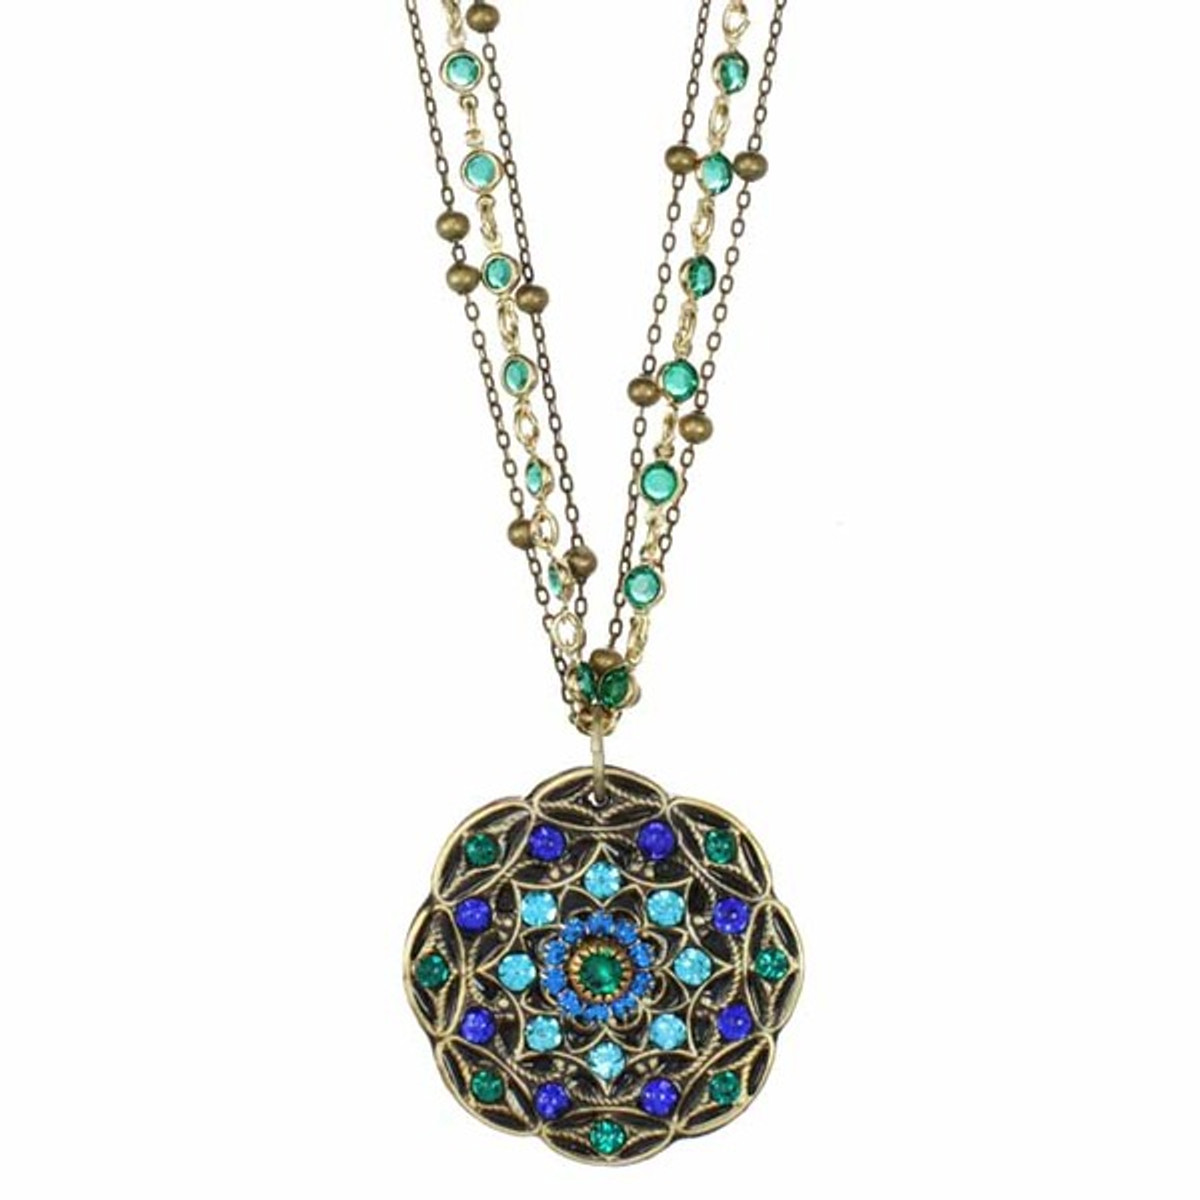 Peacock Necklace From Michal Golan Jewellery